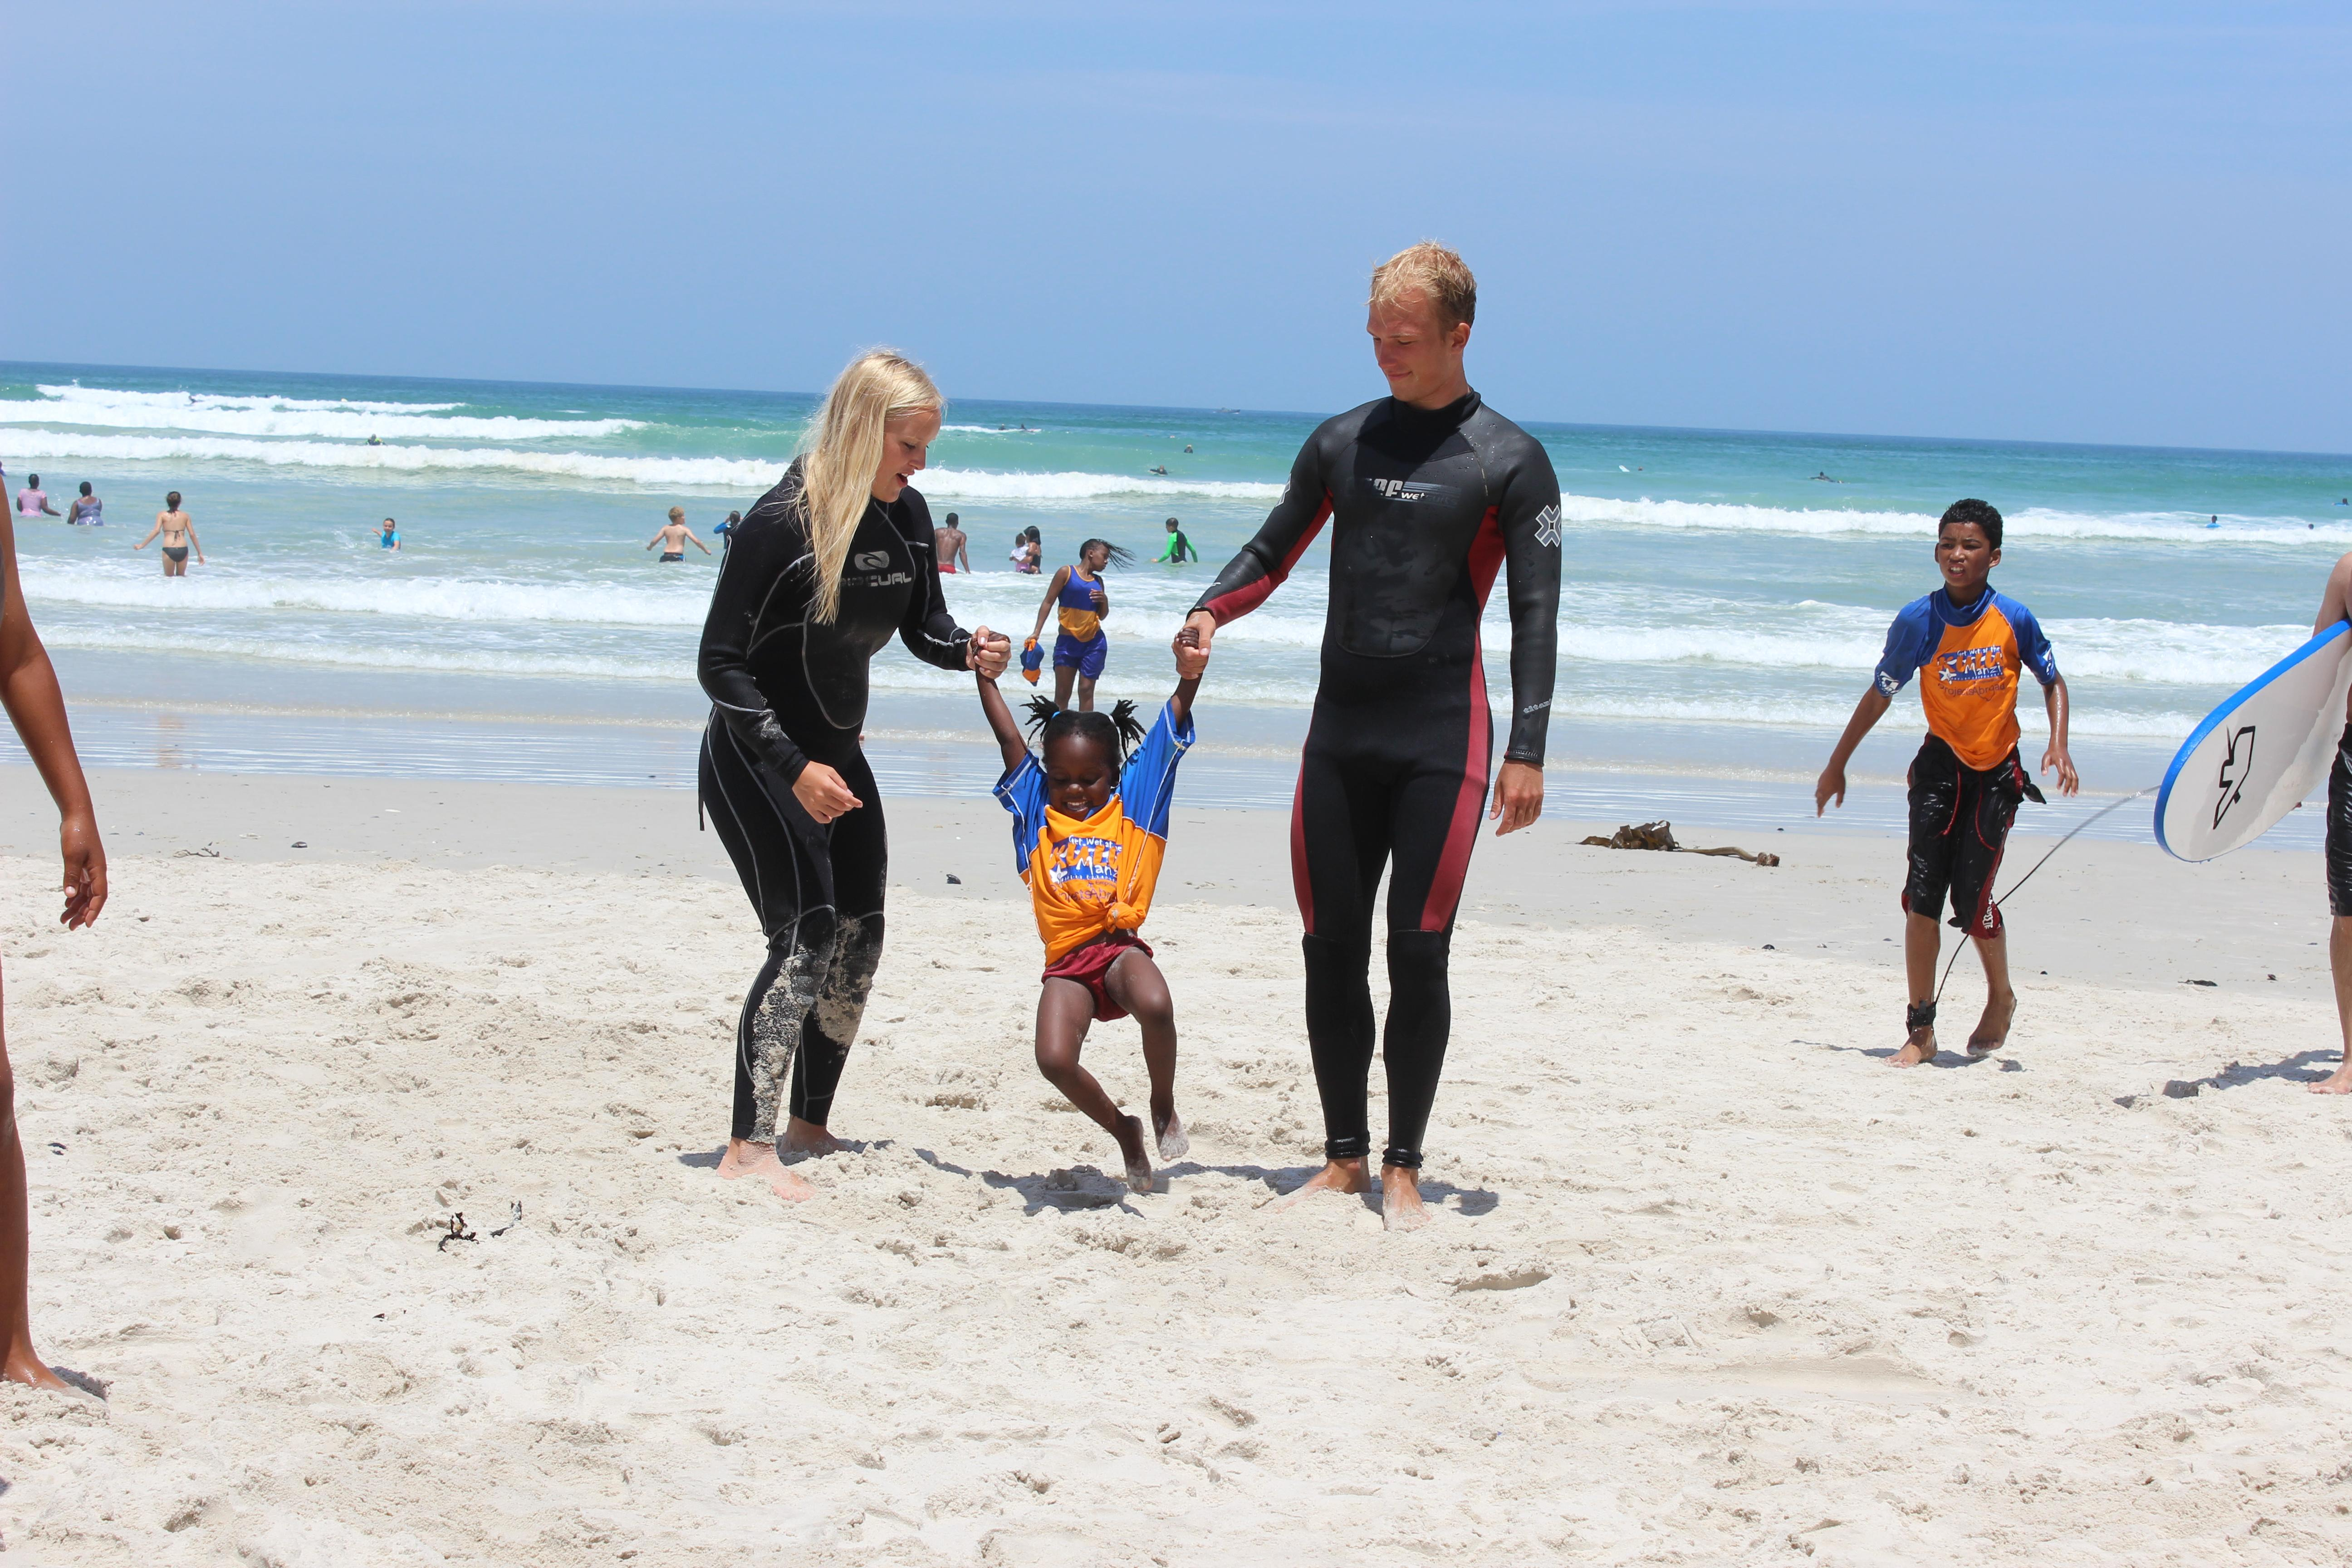 Volunteers work with surfers and teach children to surf in South Africa